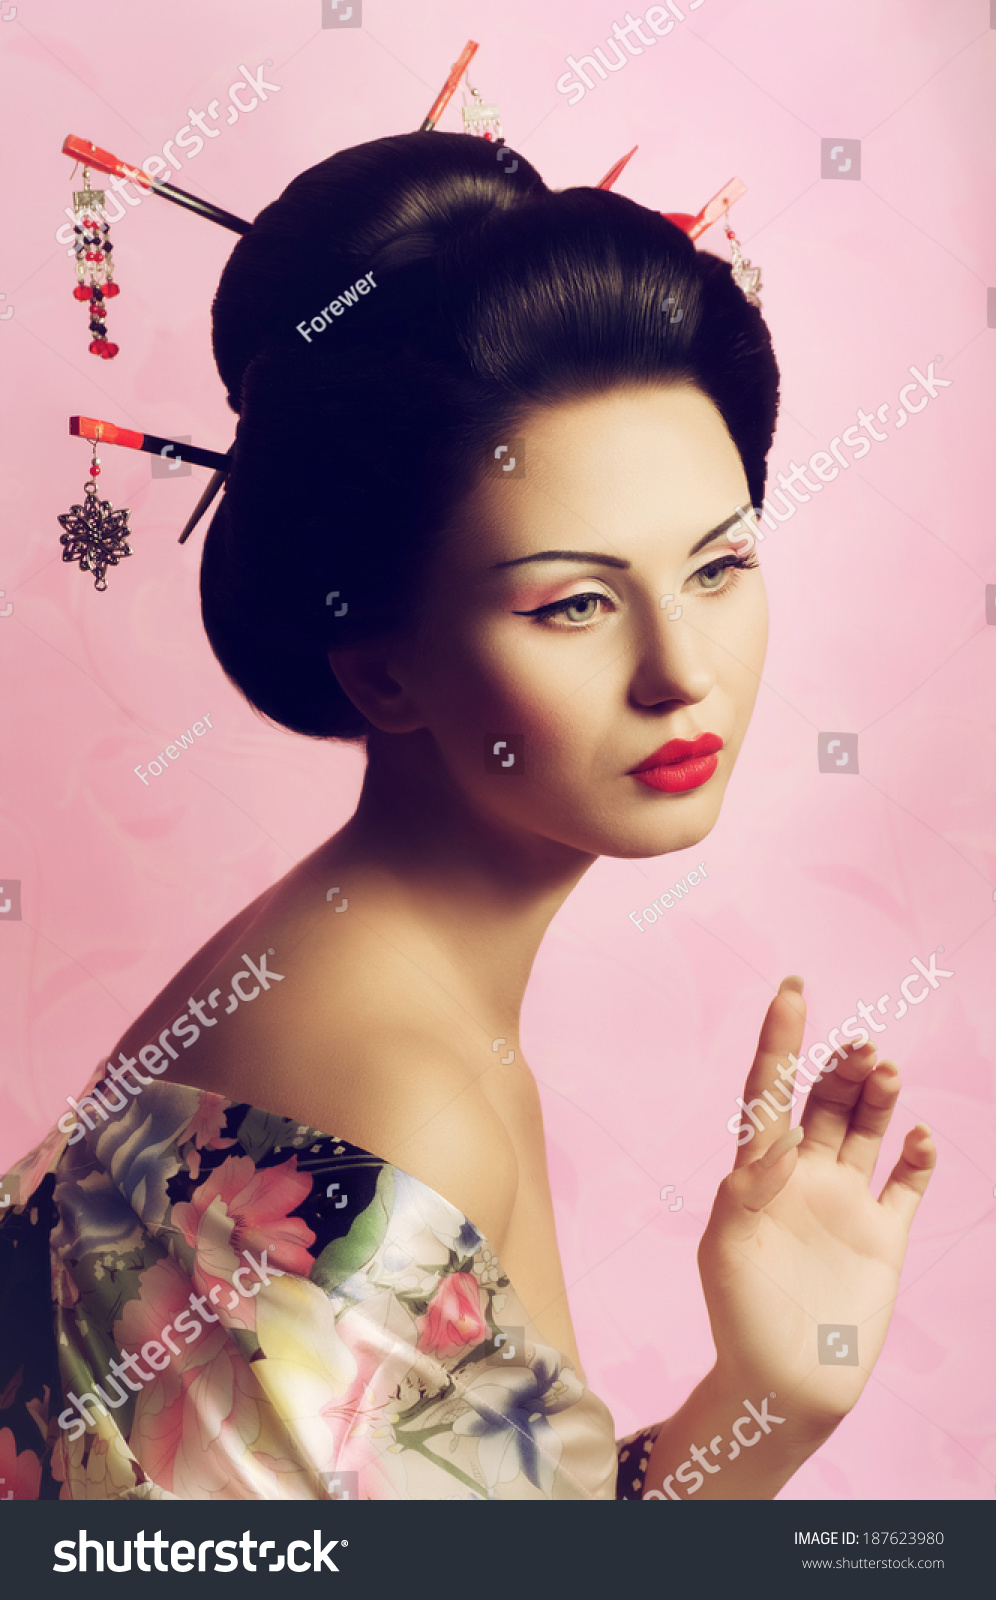 Portrait Japanese Geisha Woman Stock Photo 187623980